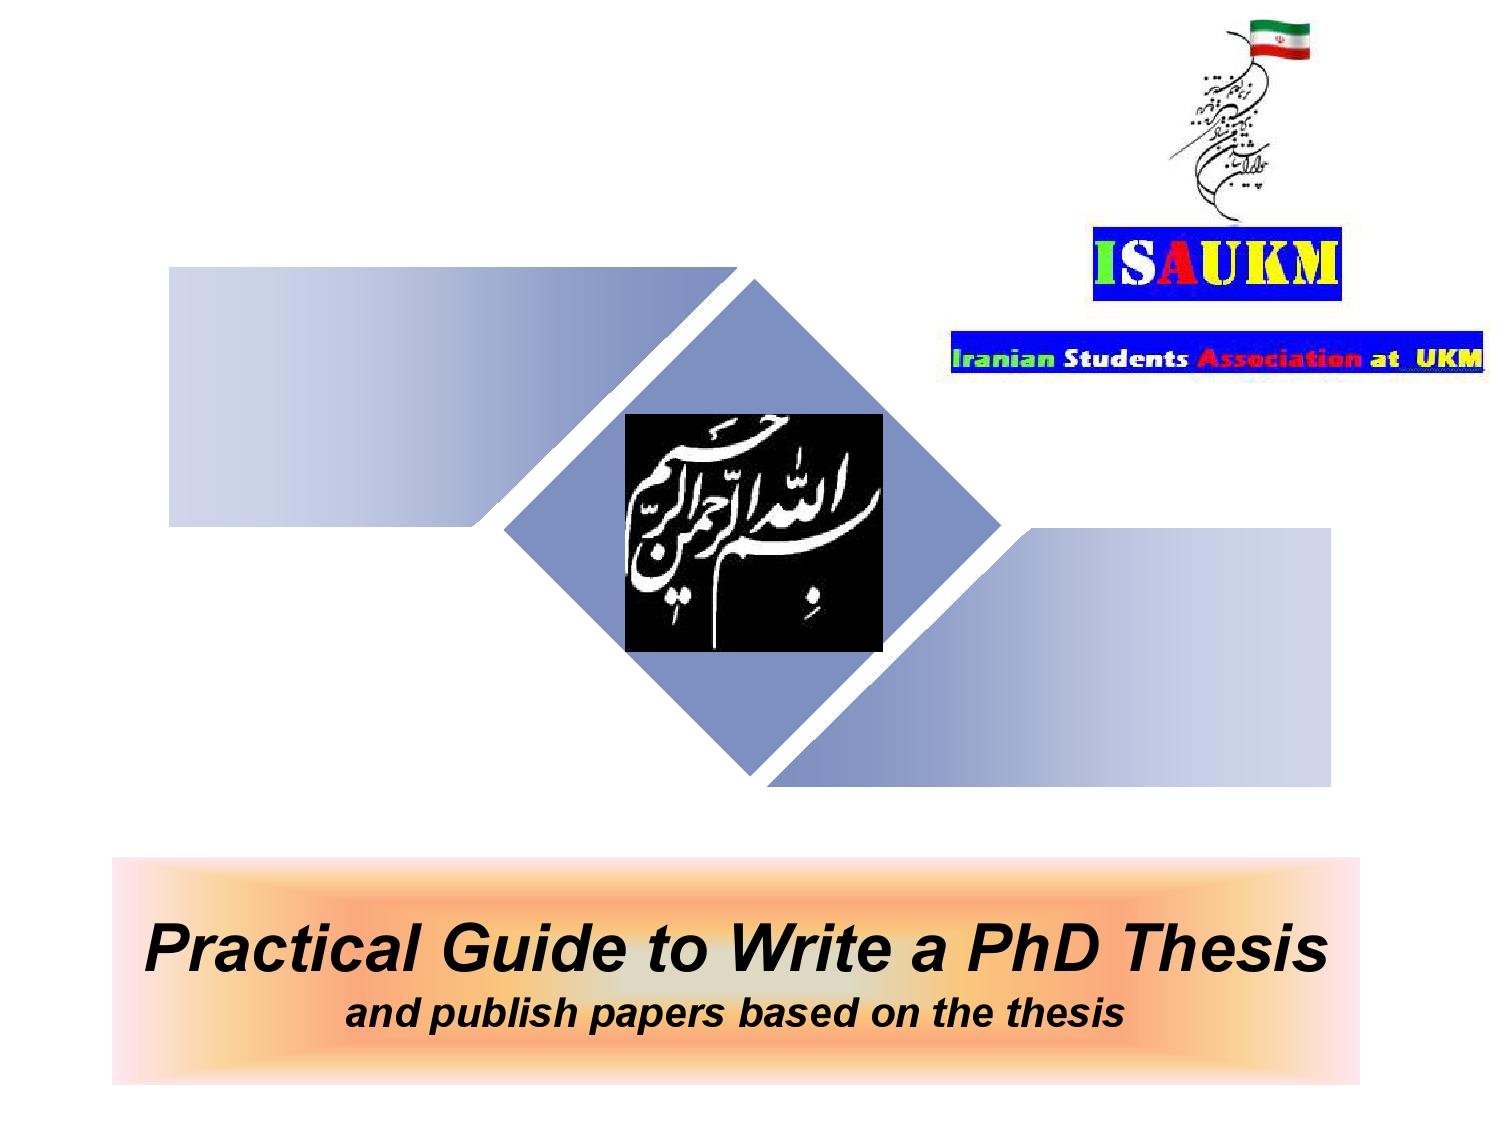 ukm thesis guideline